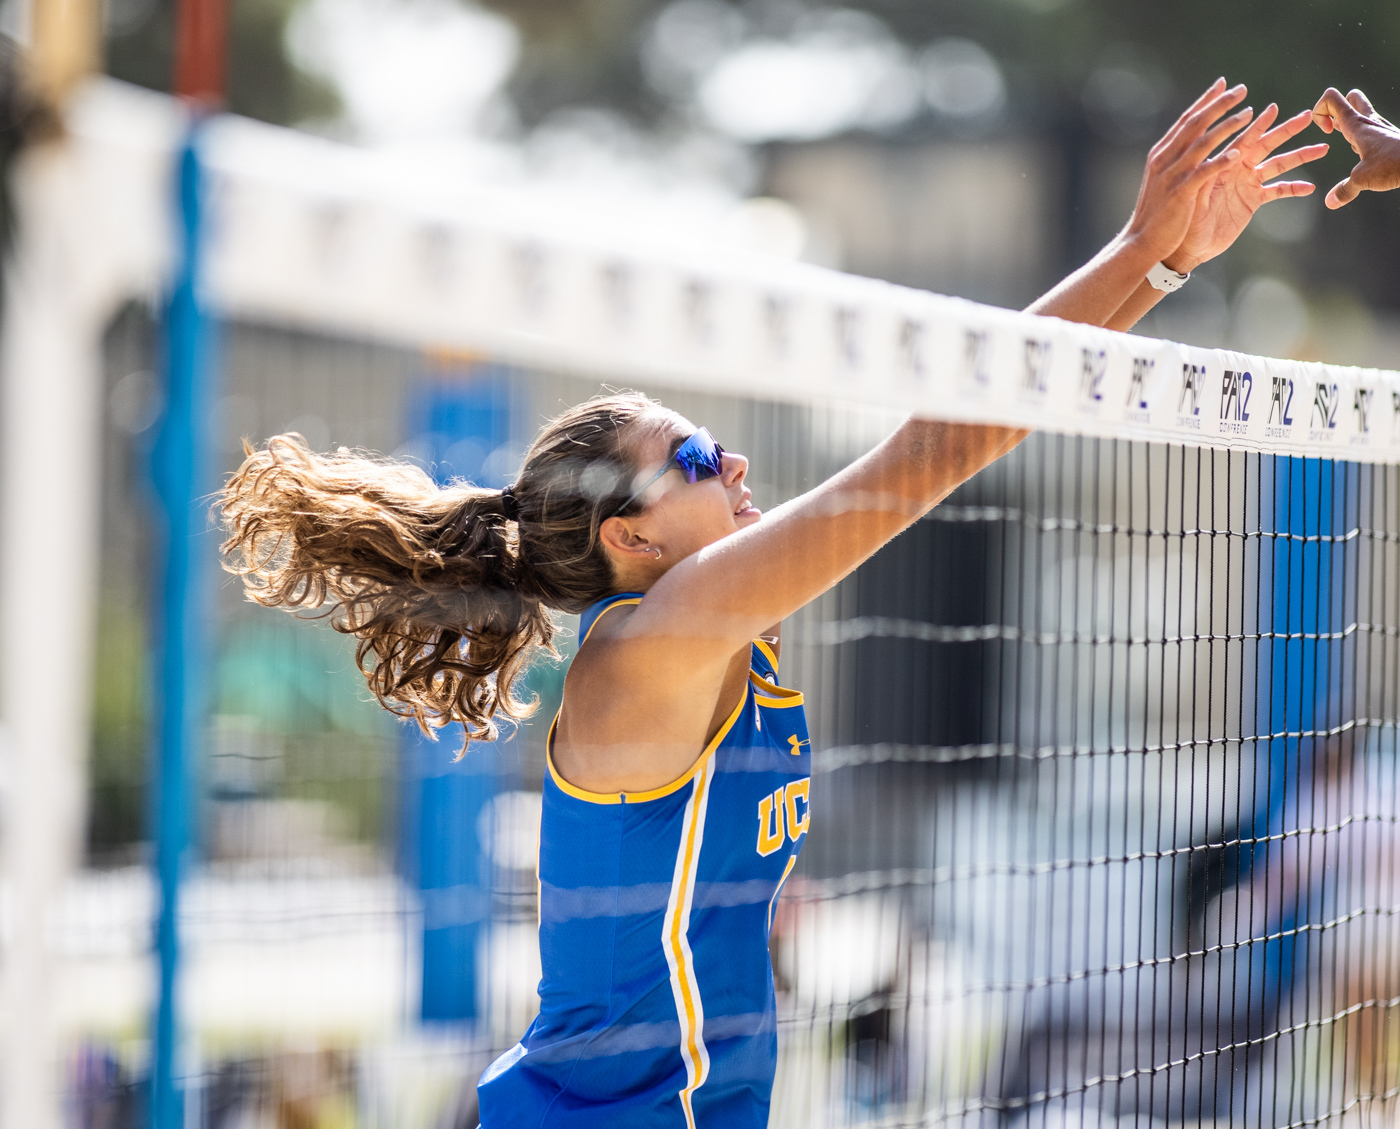 Beach volleyball secures win against Cal Poly in tournament elimination match - Daily Bruin